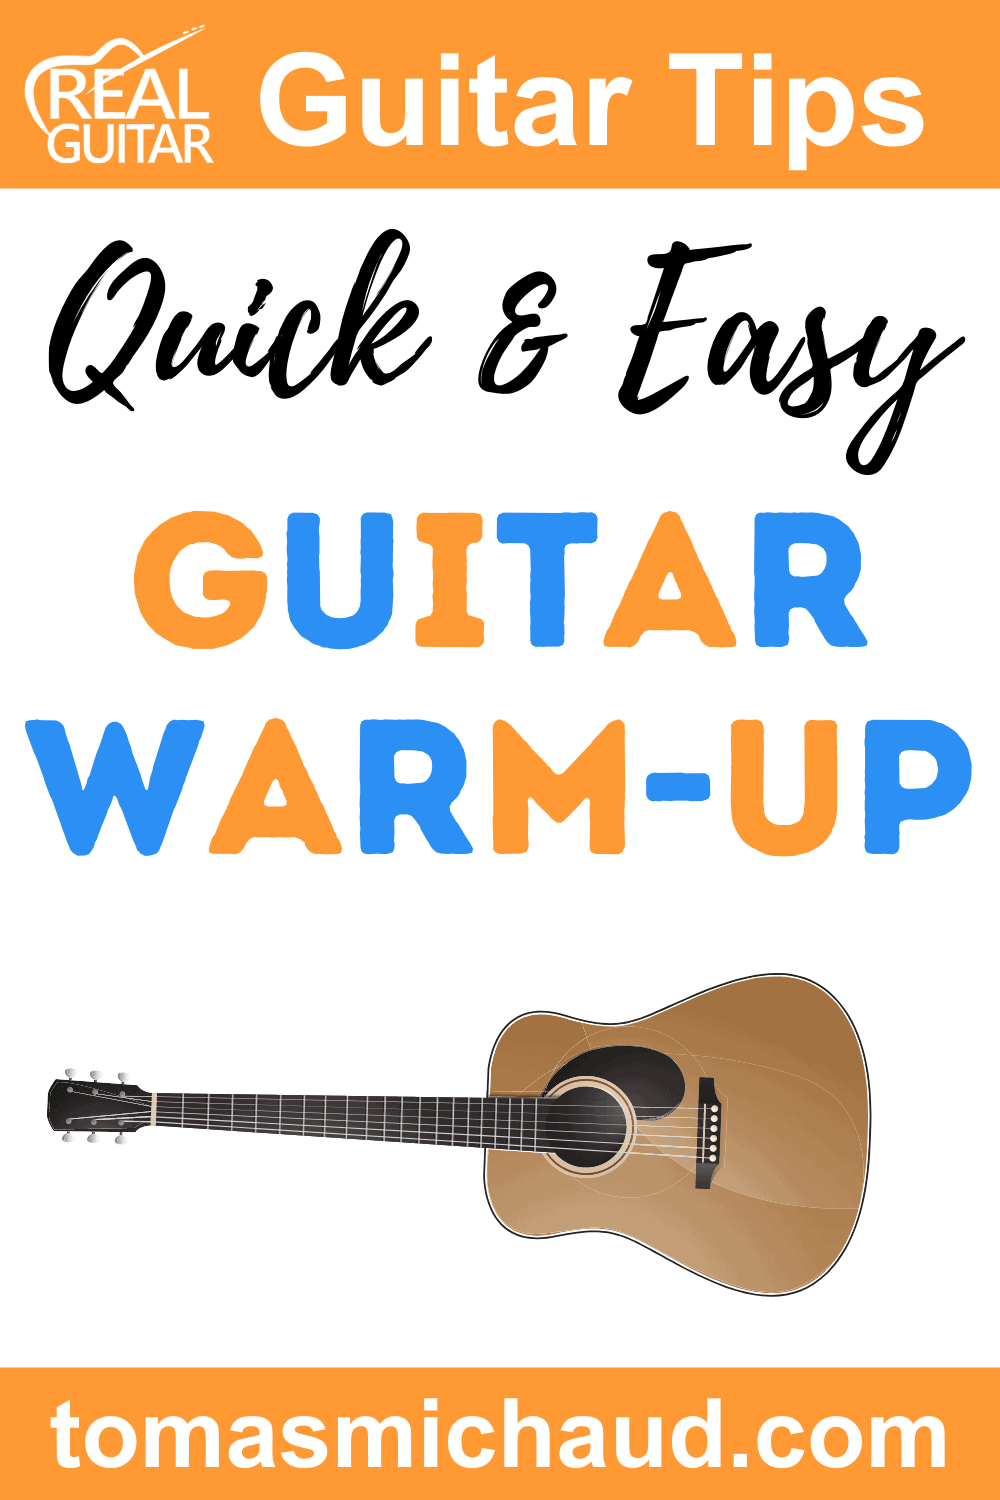 Quick and Easy Guitar Warm-Up